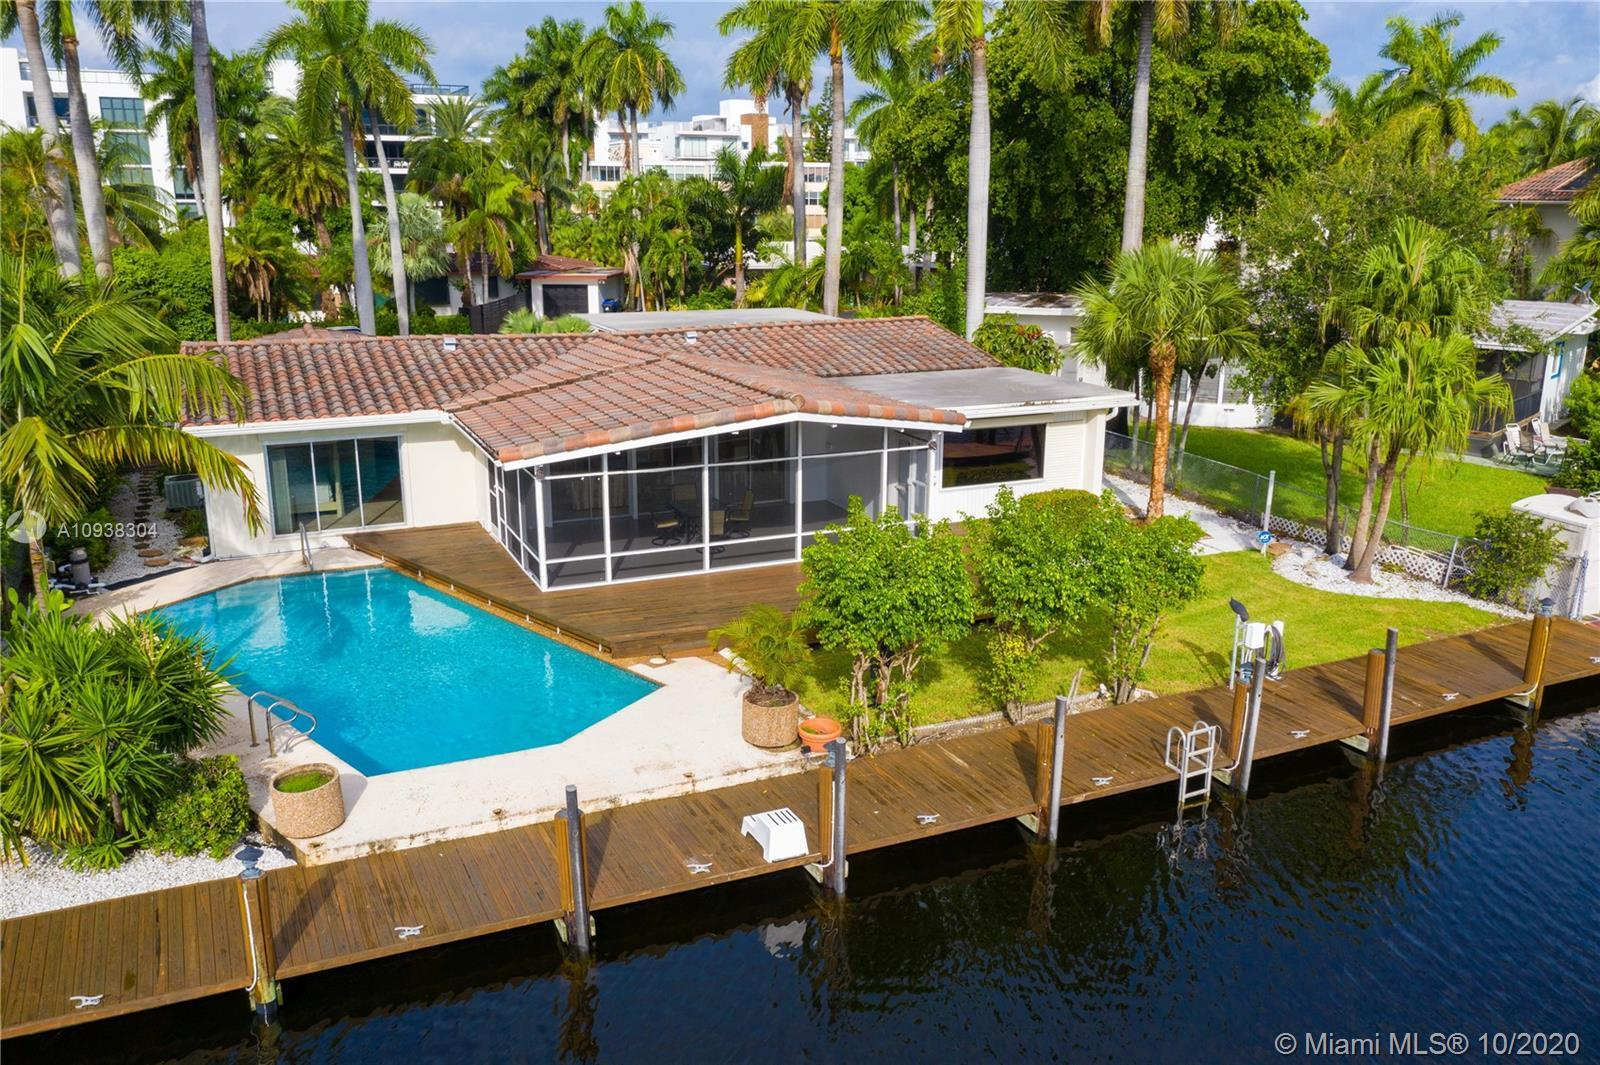 Welcome to your South Florida Oasis! Located on the iconic Fiesta Way on the Las Olas Isles, this cl